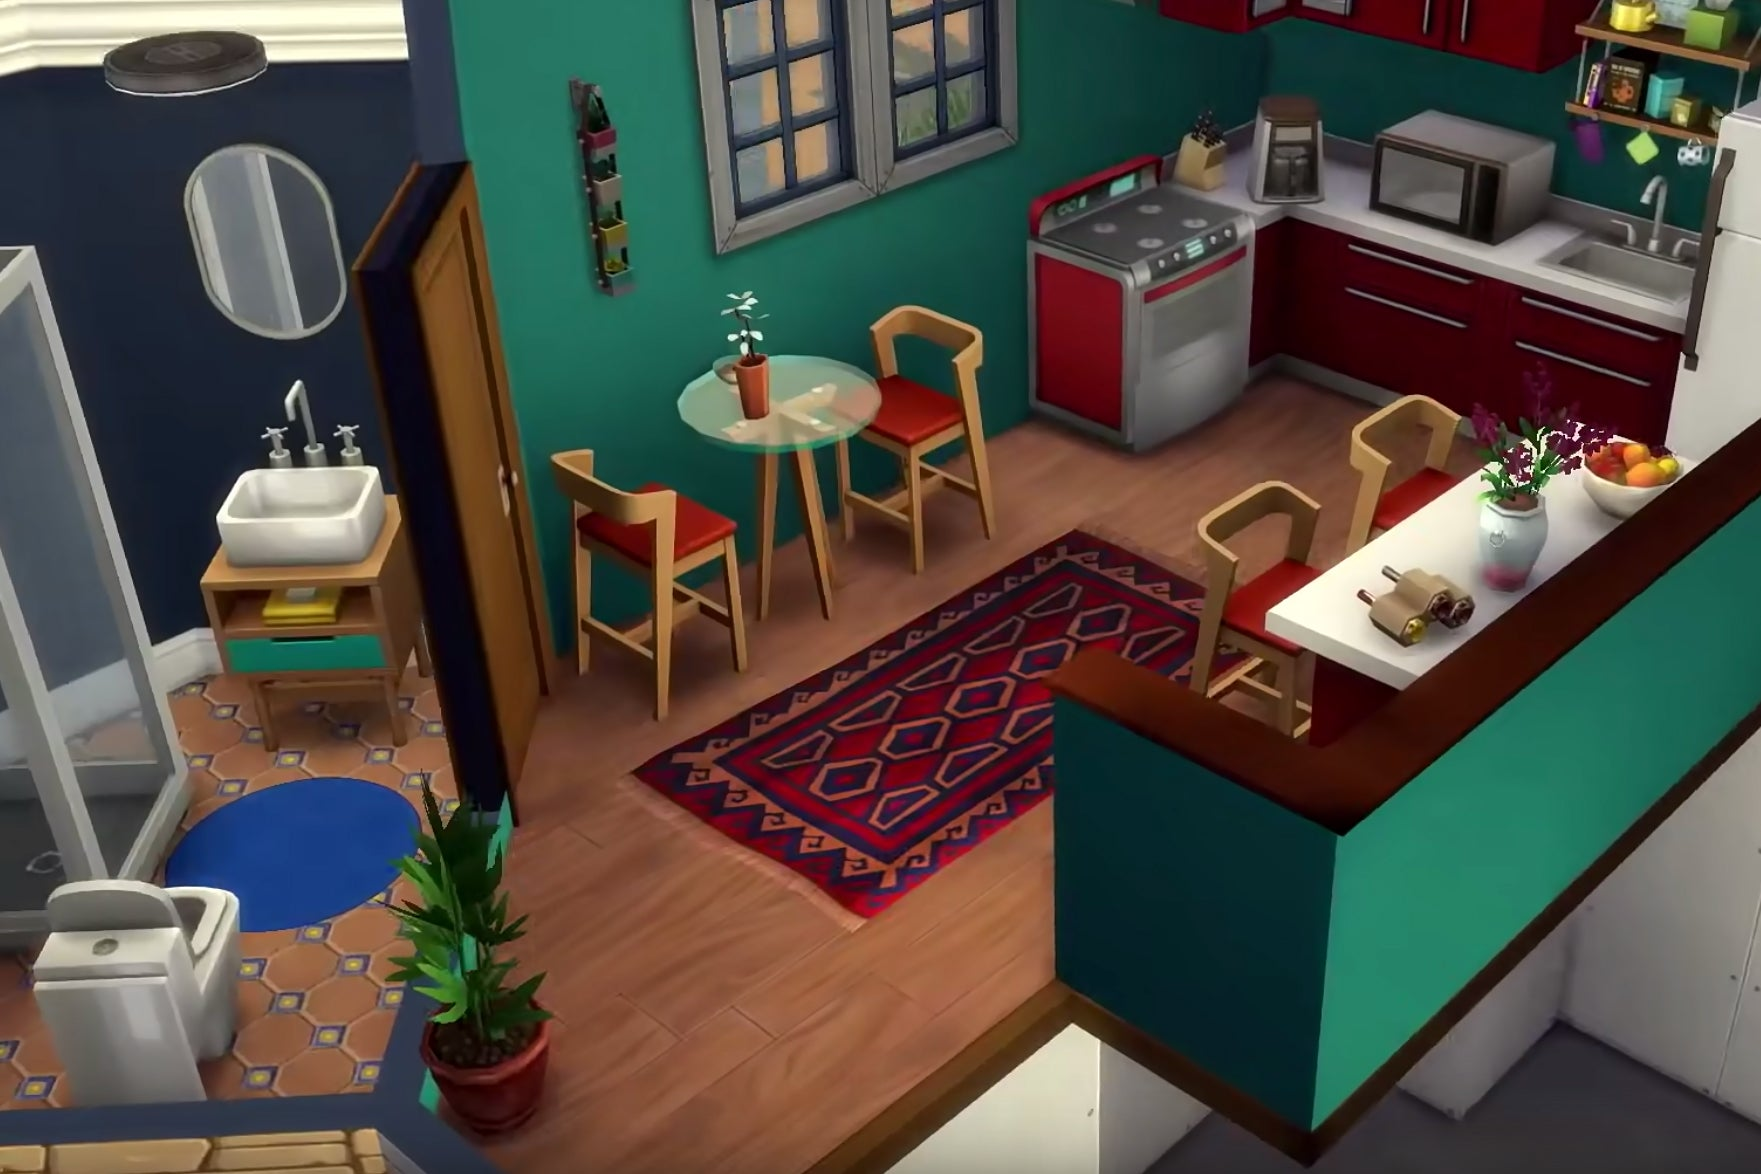 Sims interior with small kitchen